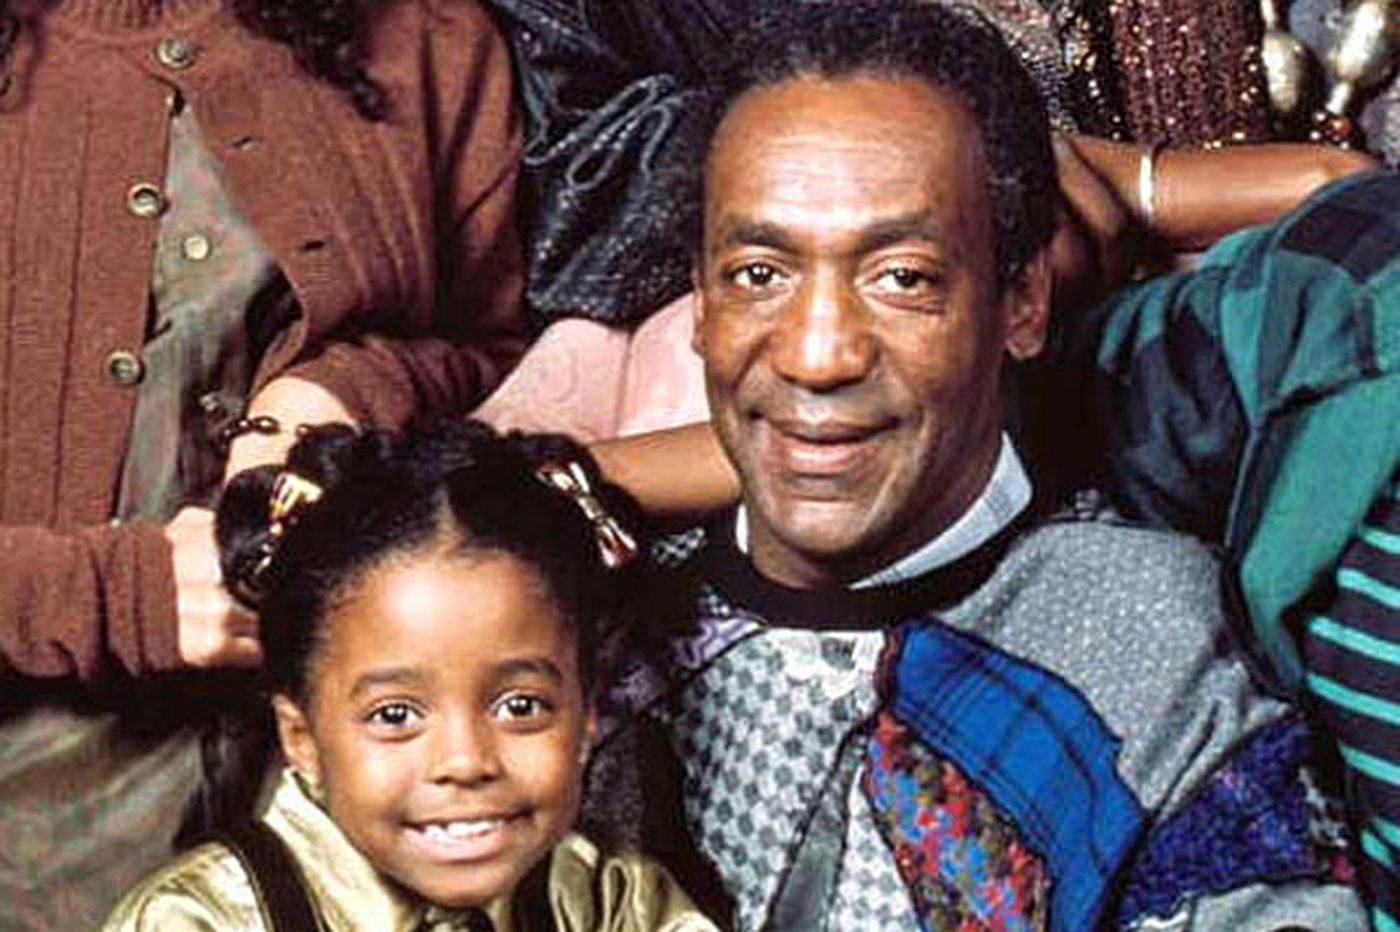 No matter Cosby's behavior, must we also lose Cliff Huxtable?